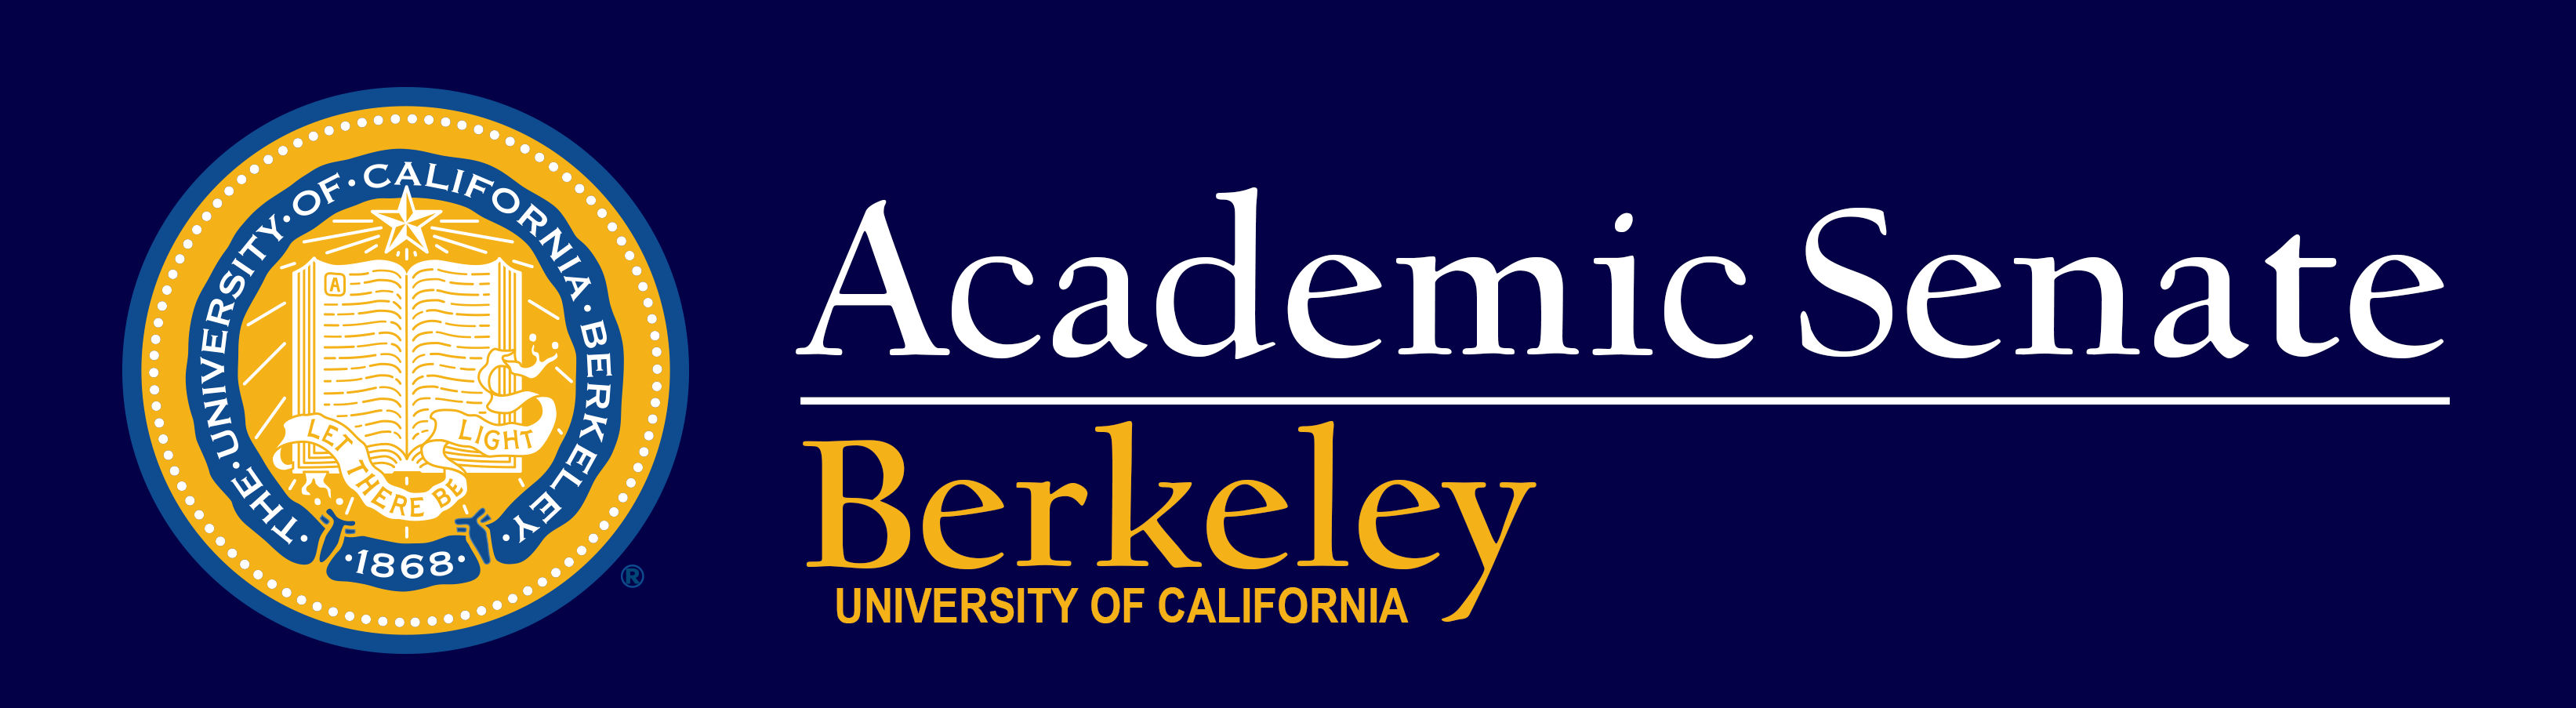 Academic Senate Logo with UC Berkeley navy and gold seal